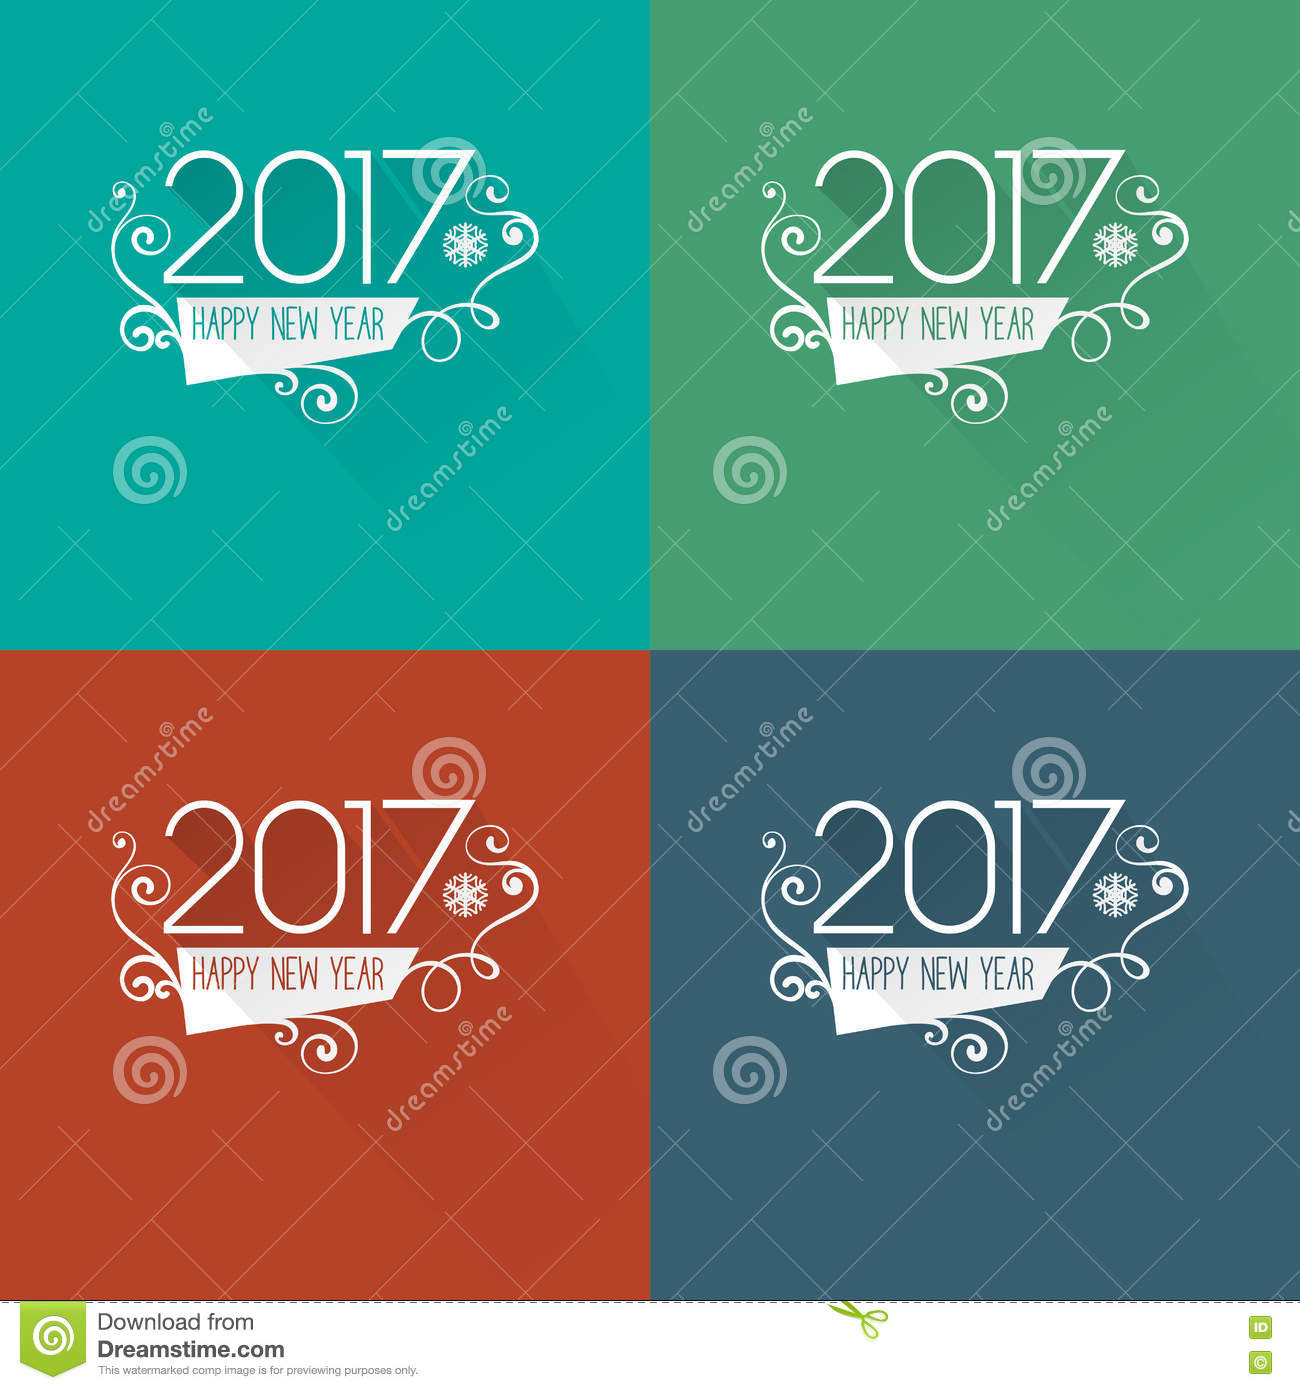 Modern Style 2017 New Year Greetings Card Stock Vector